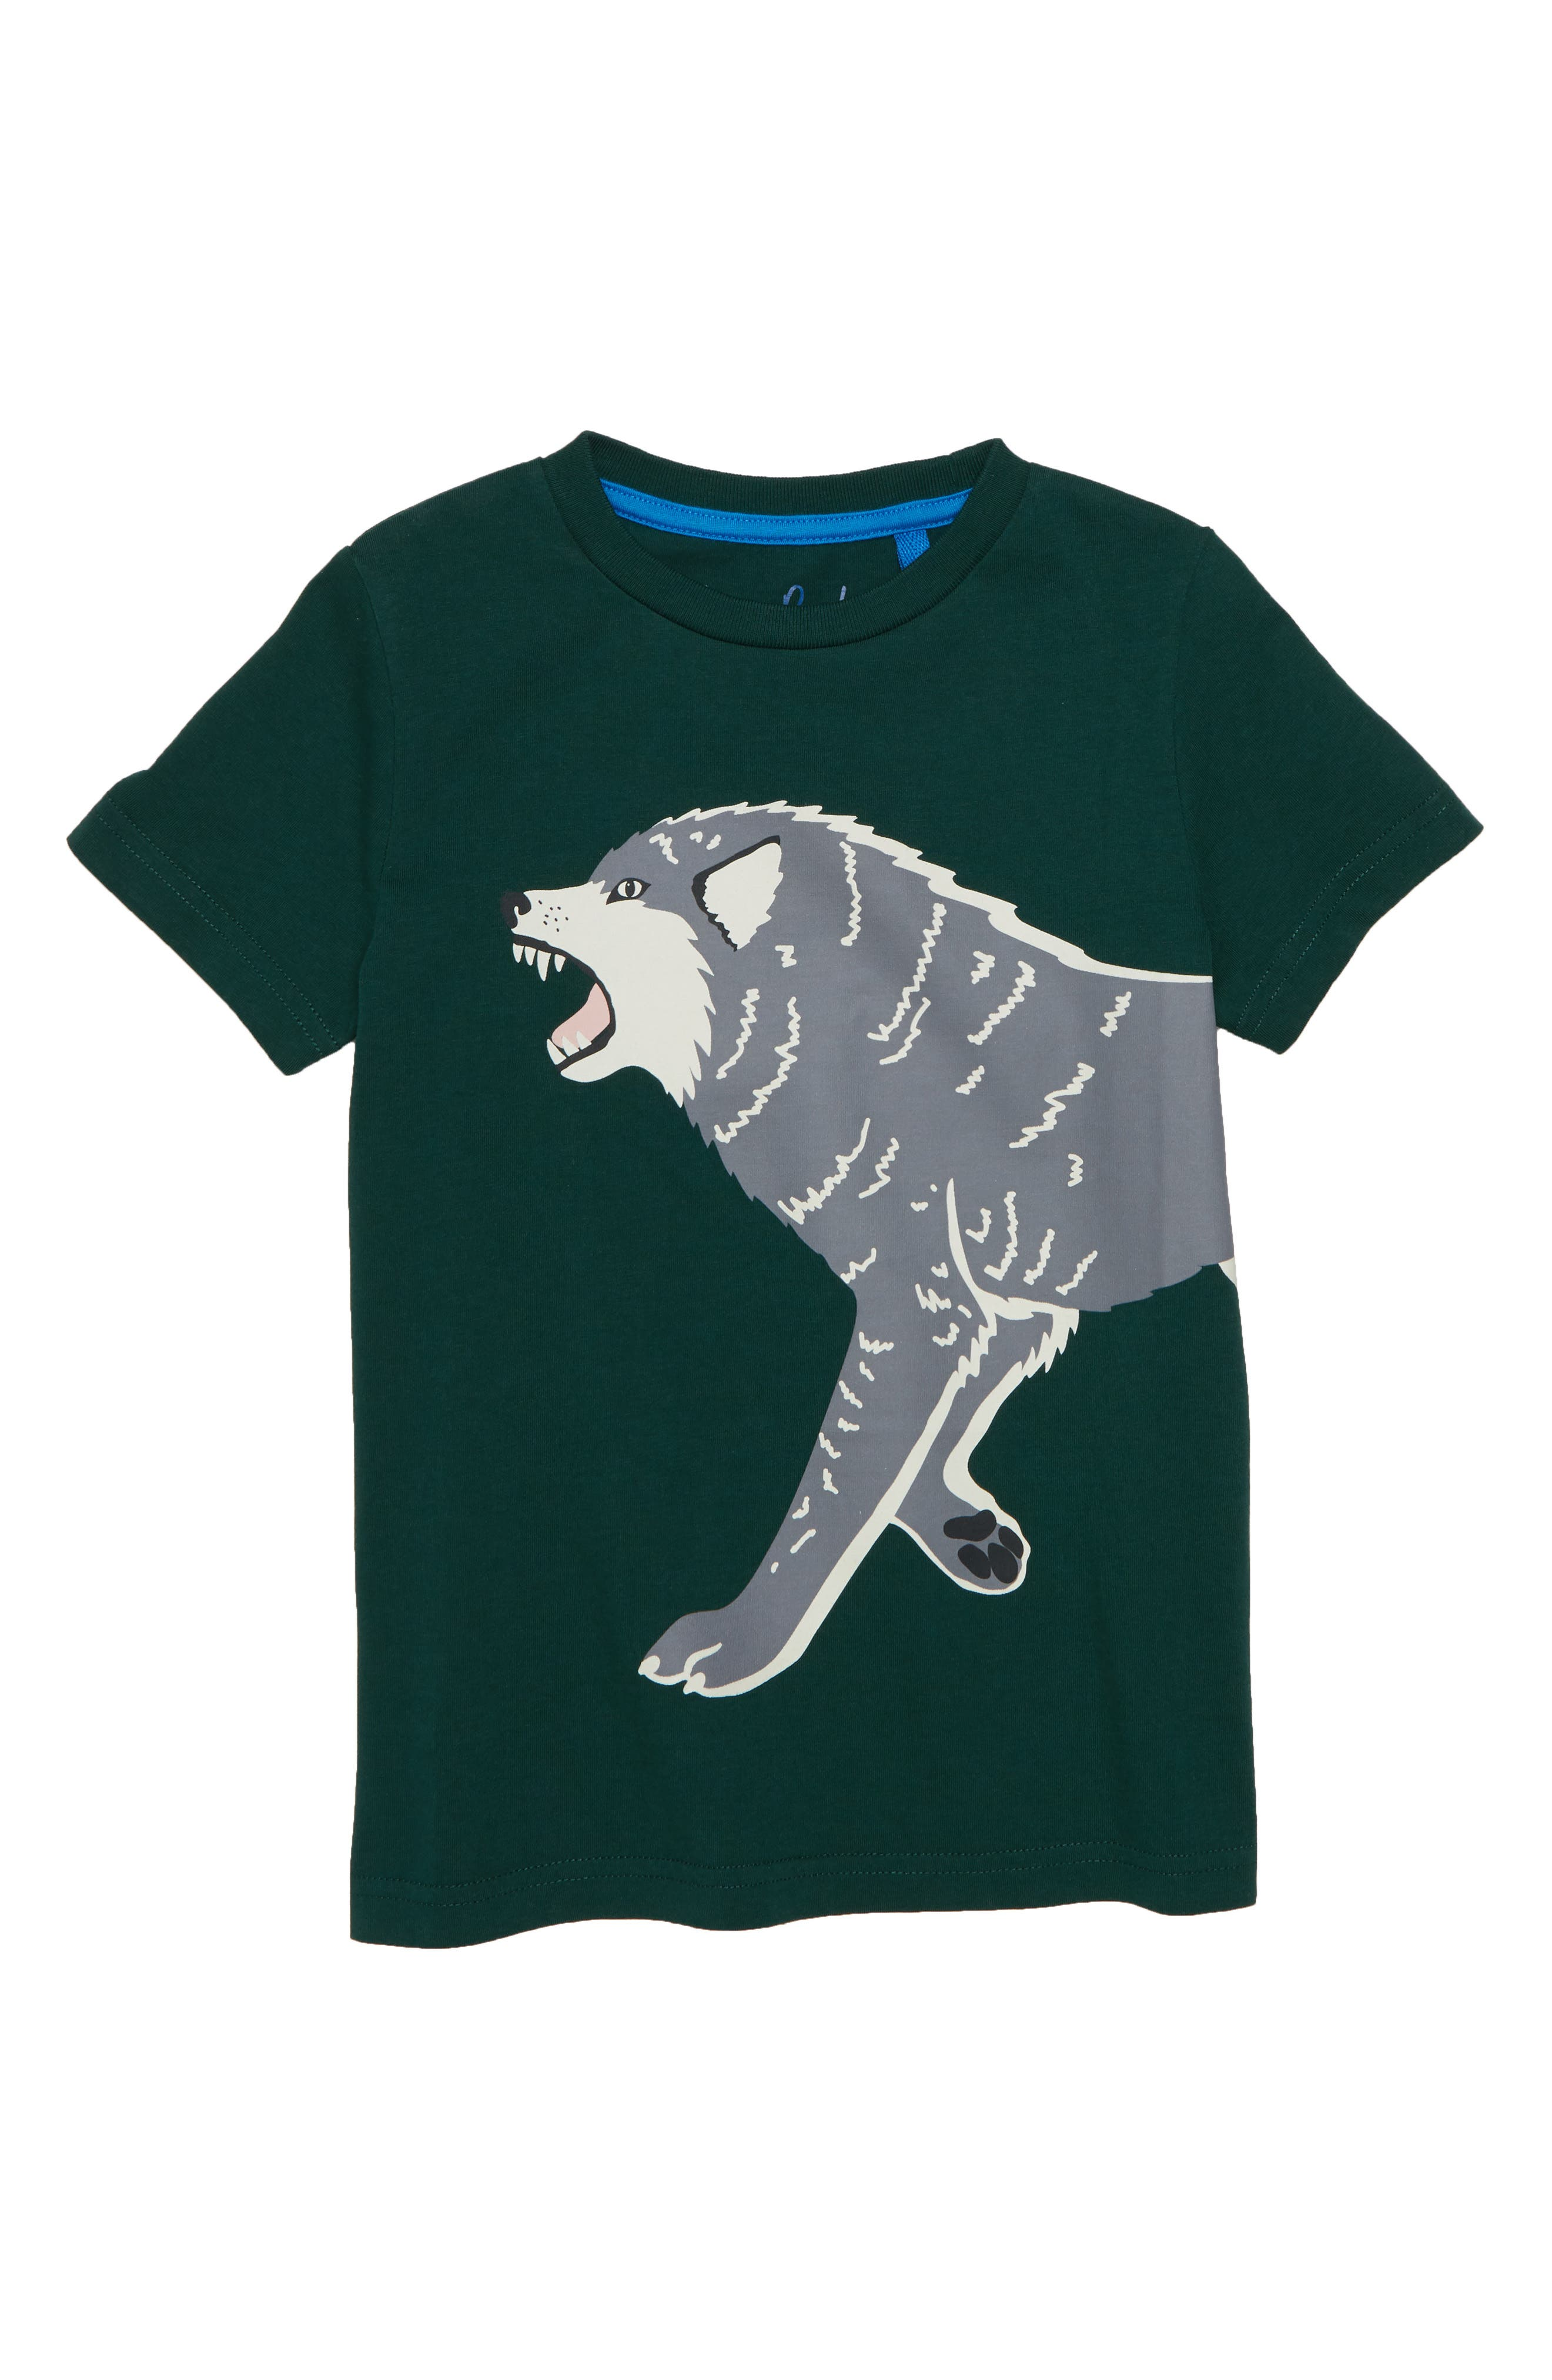 Glow in the Dark Wolf T-Shirt,                             Main thumbnail 1, color,                             Scotts Pine Green